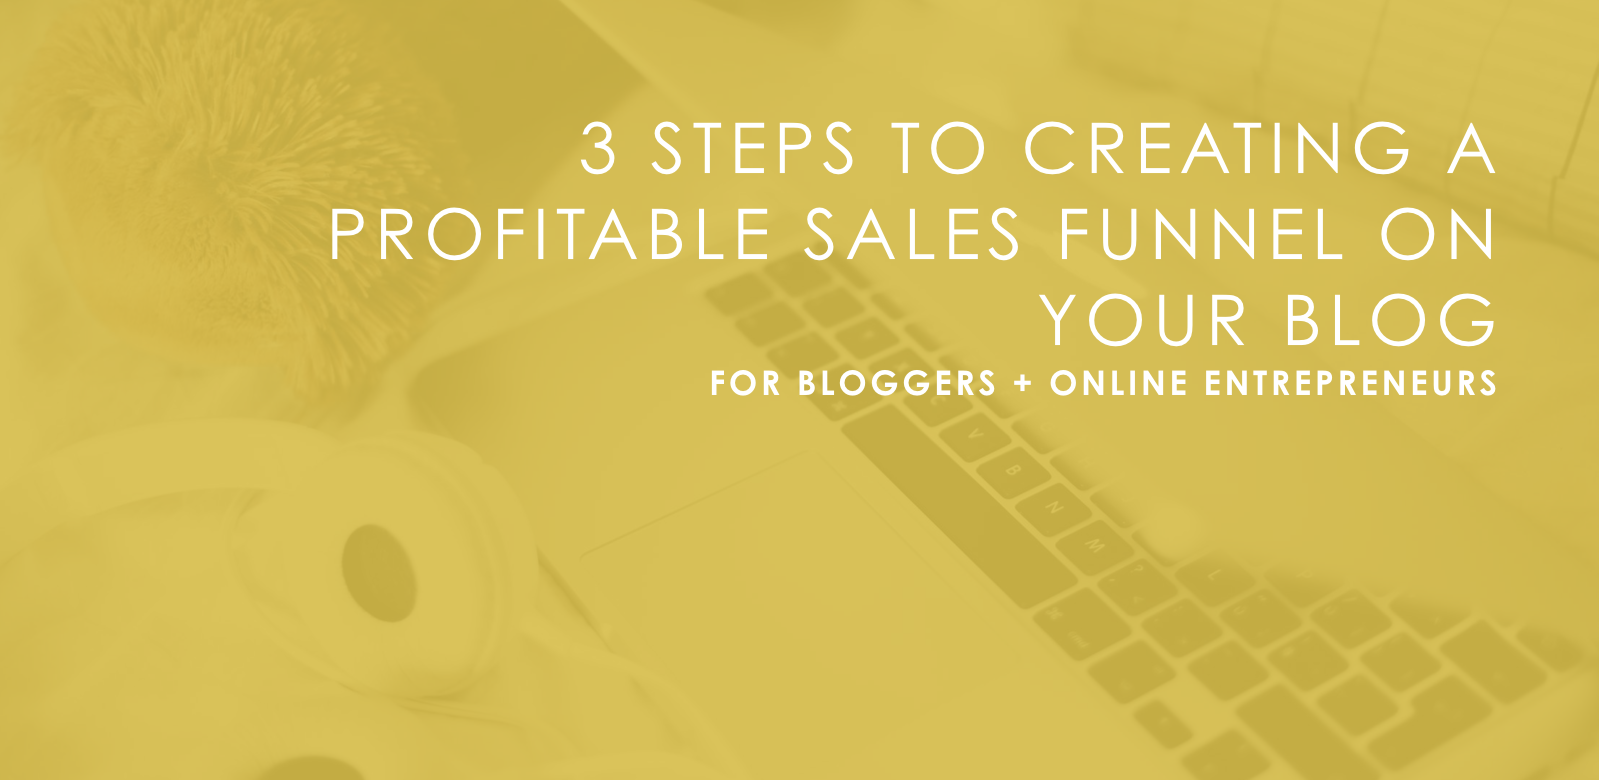 How To Create Profitable Sales Funnels